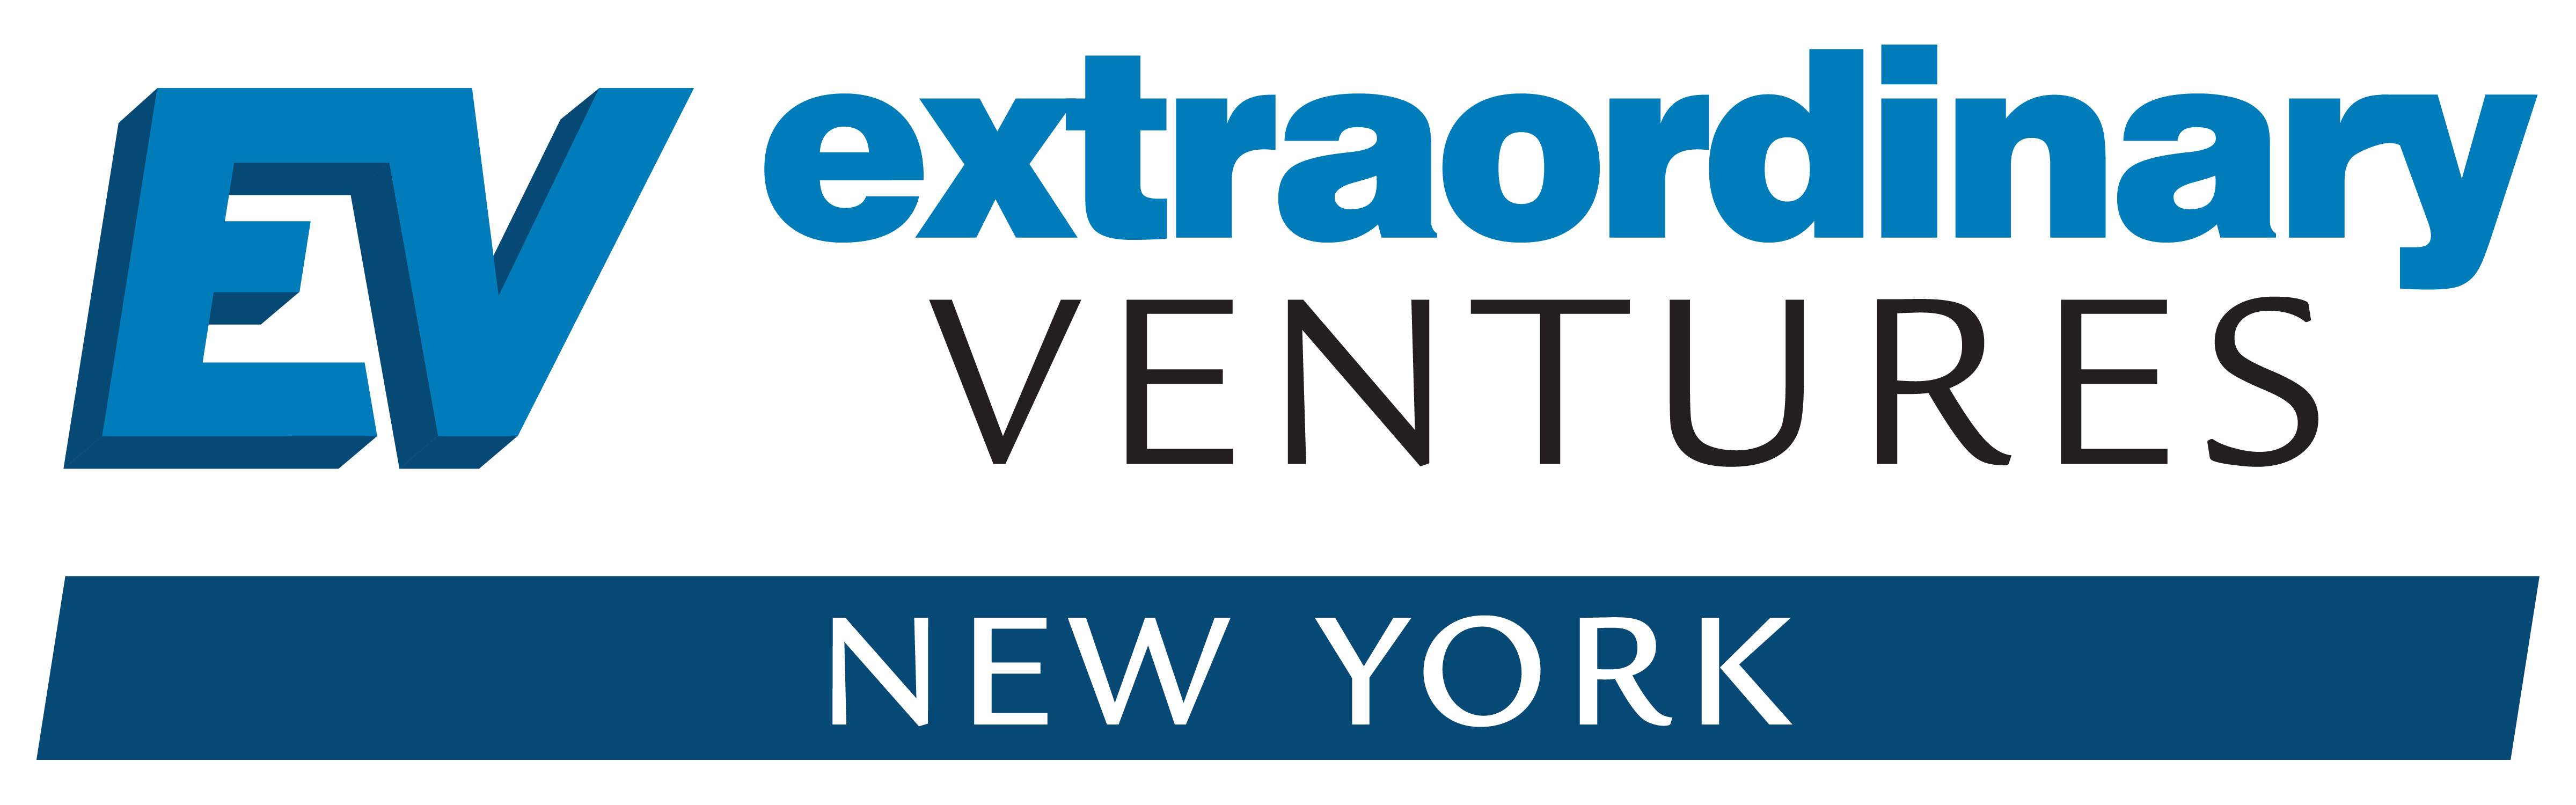 Extraordinary Ventures NY